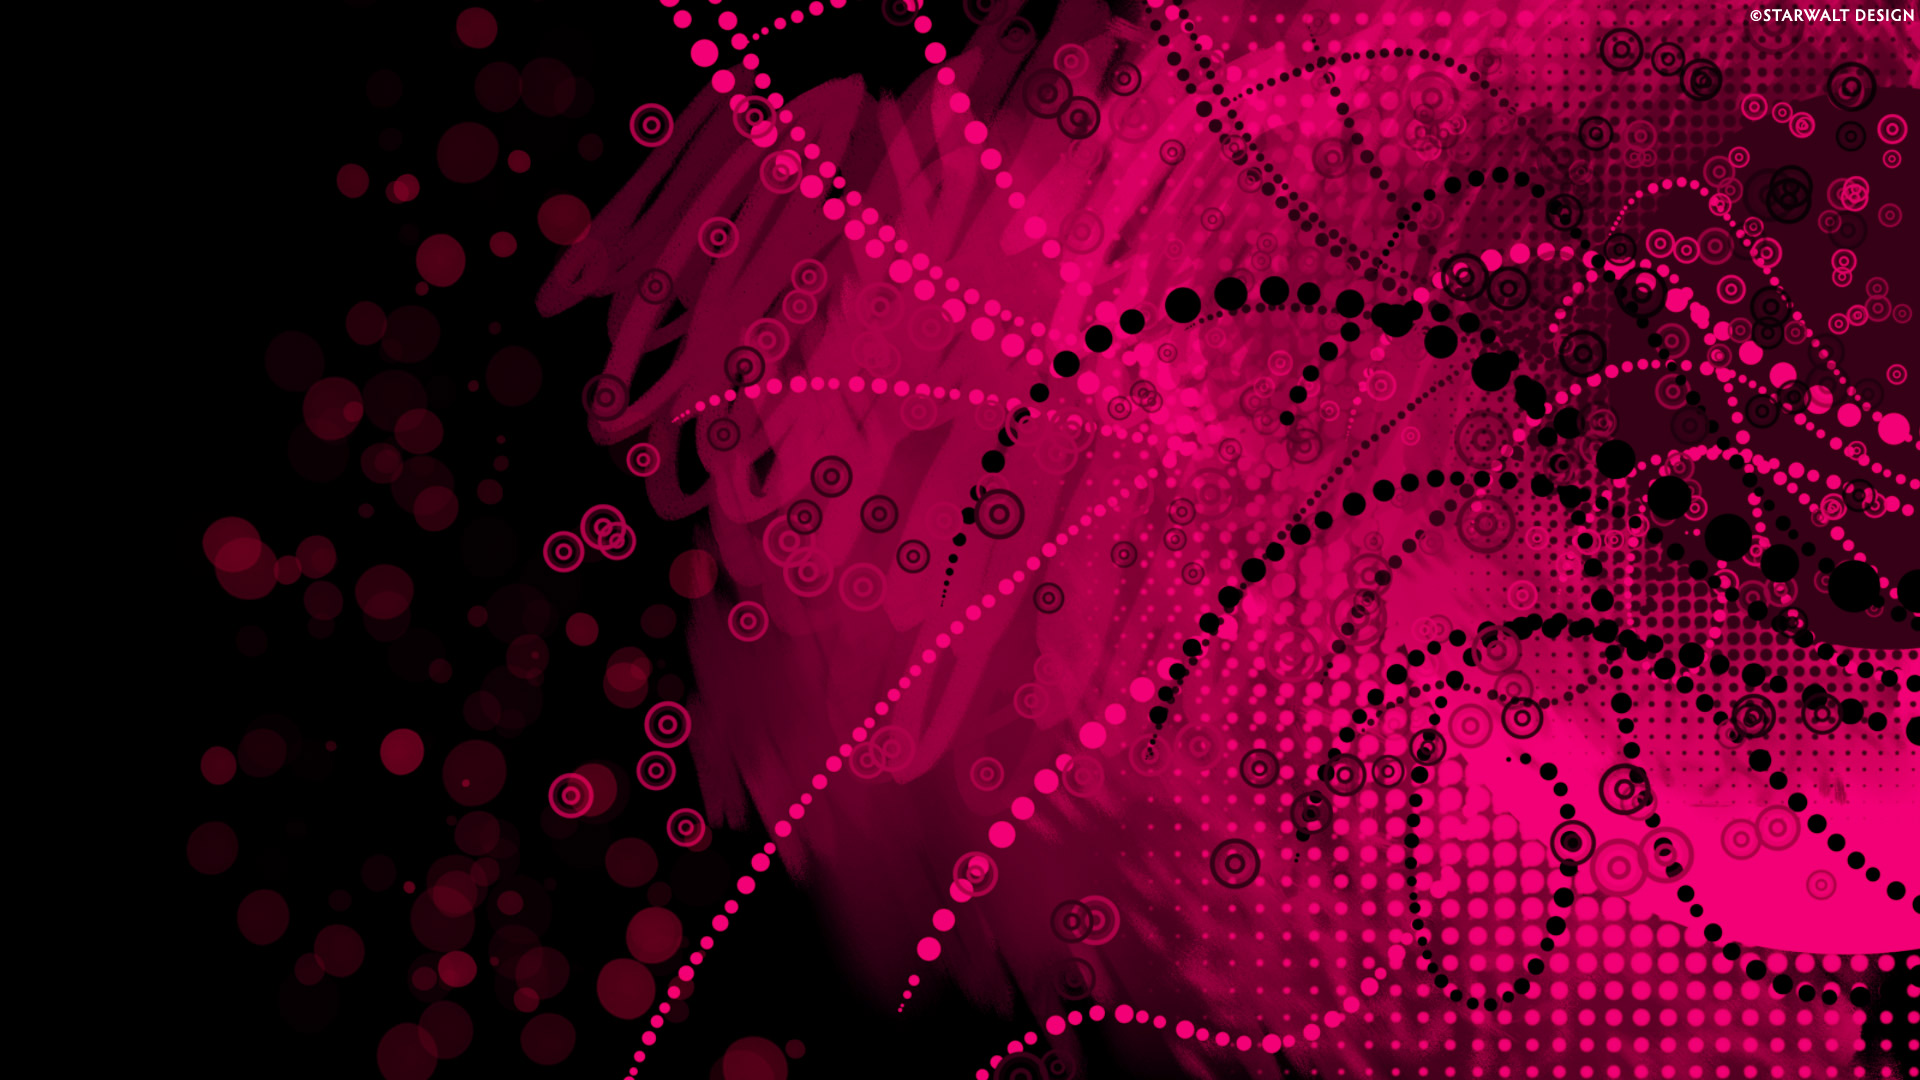 Pink And Black Wallpaper Hd   LiLzeu   Tattoo DE 1920x1080